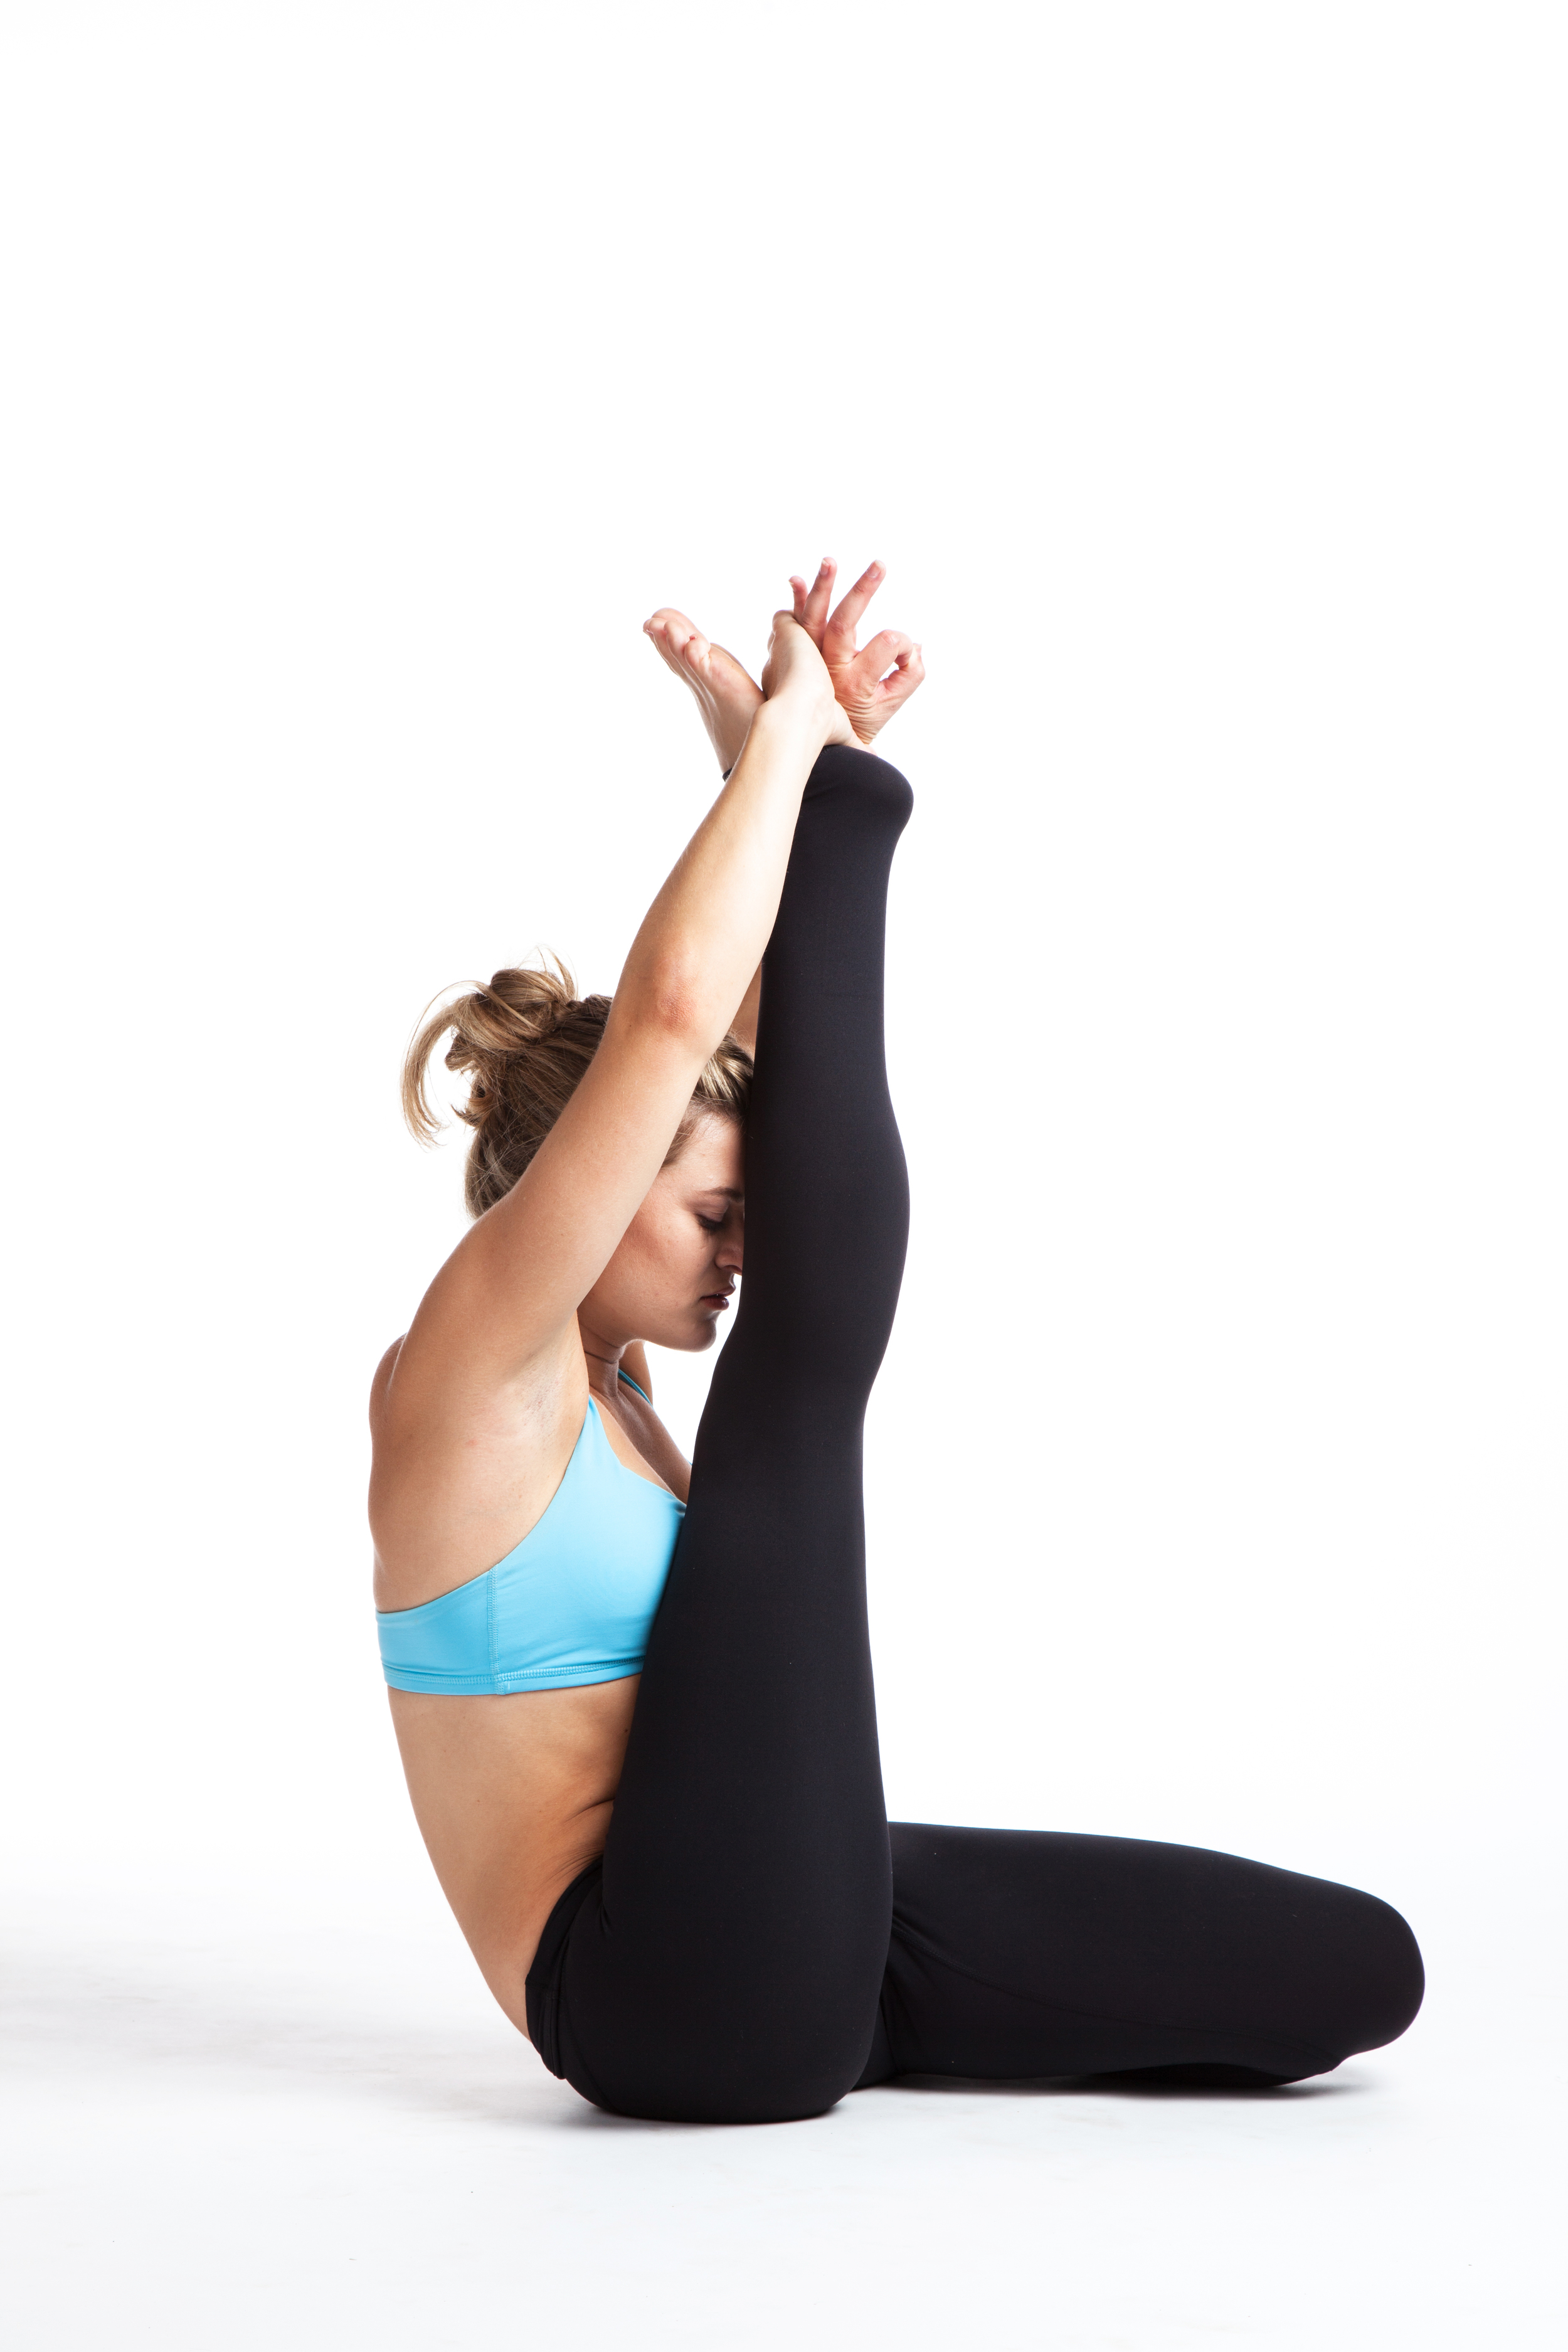 Feel Good in Hybrid Backbends  : Strive to find the beautiful combination of both expansion and support in this class leading up to a handful of hybrid backbends. Deep hip flexor work opens the front body while teaching us how to be stretchy yet strong for a balanced dose of feel-good. Props needed: one block, strap.